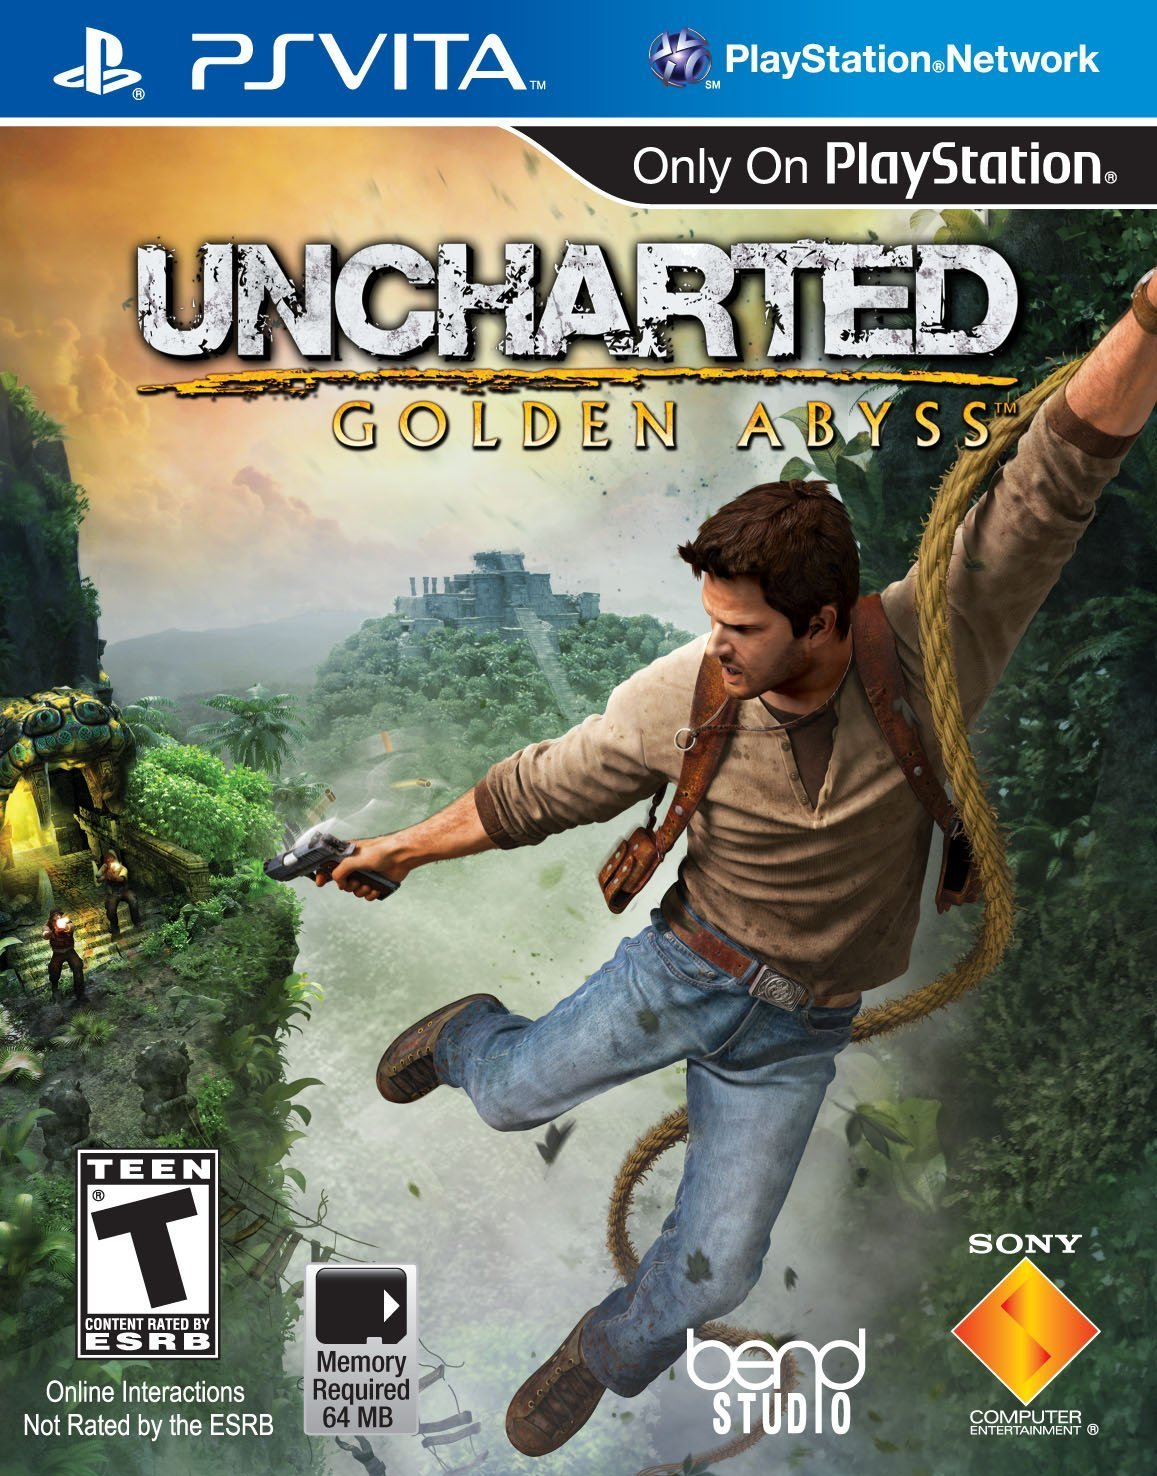 Uncharted: Golden Abyss PSVita Physical Game Cartridge US